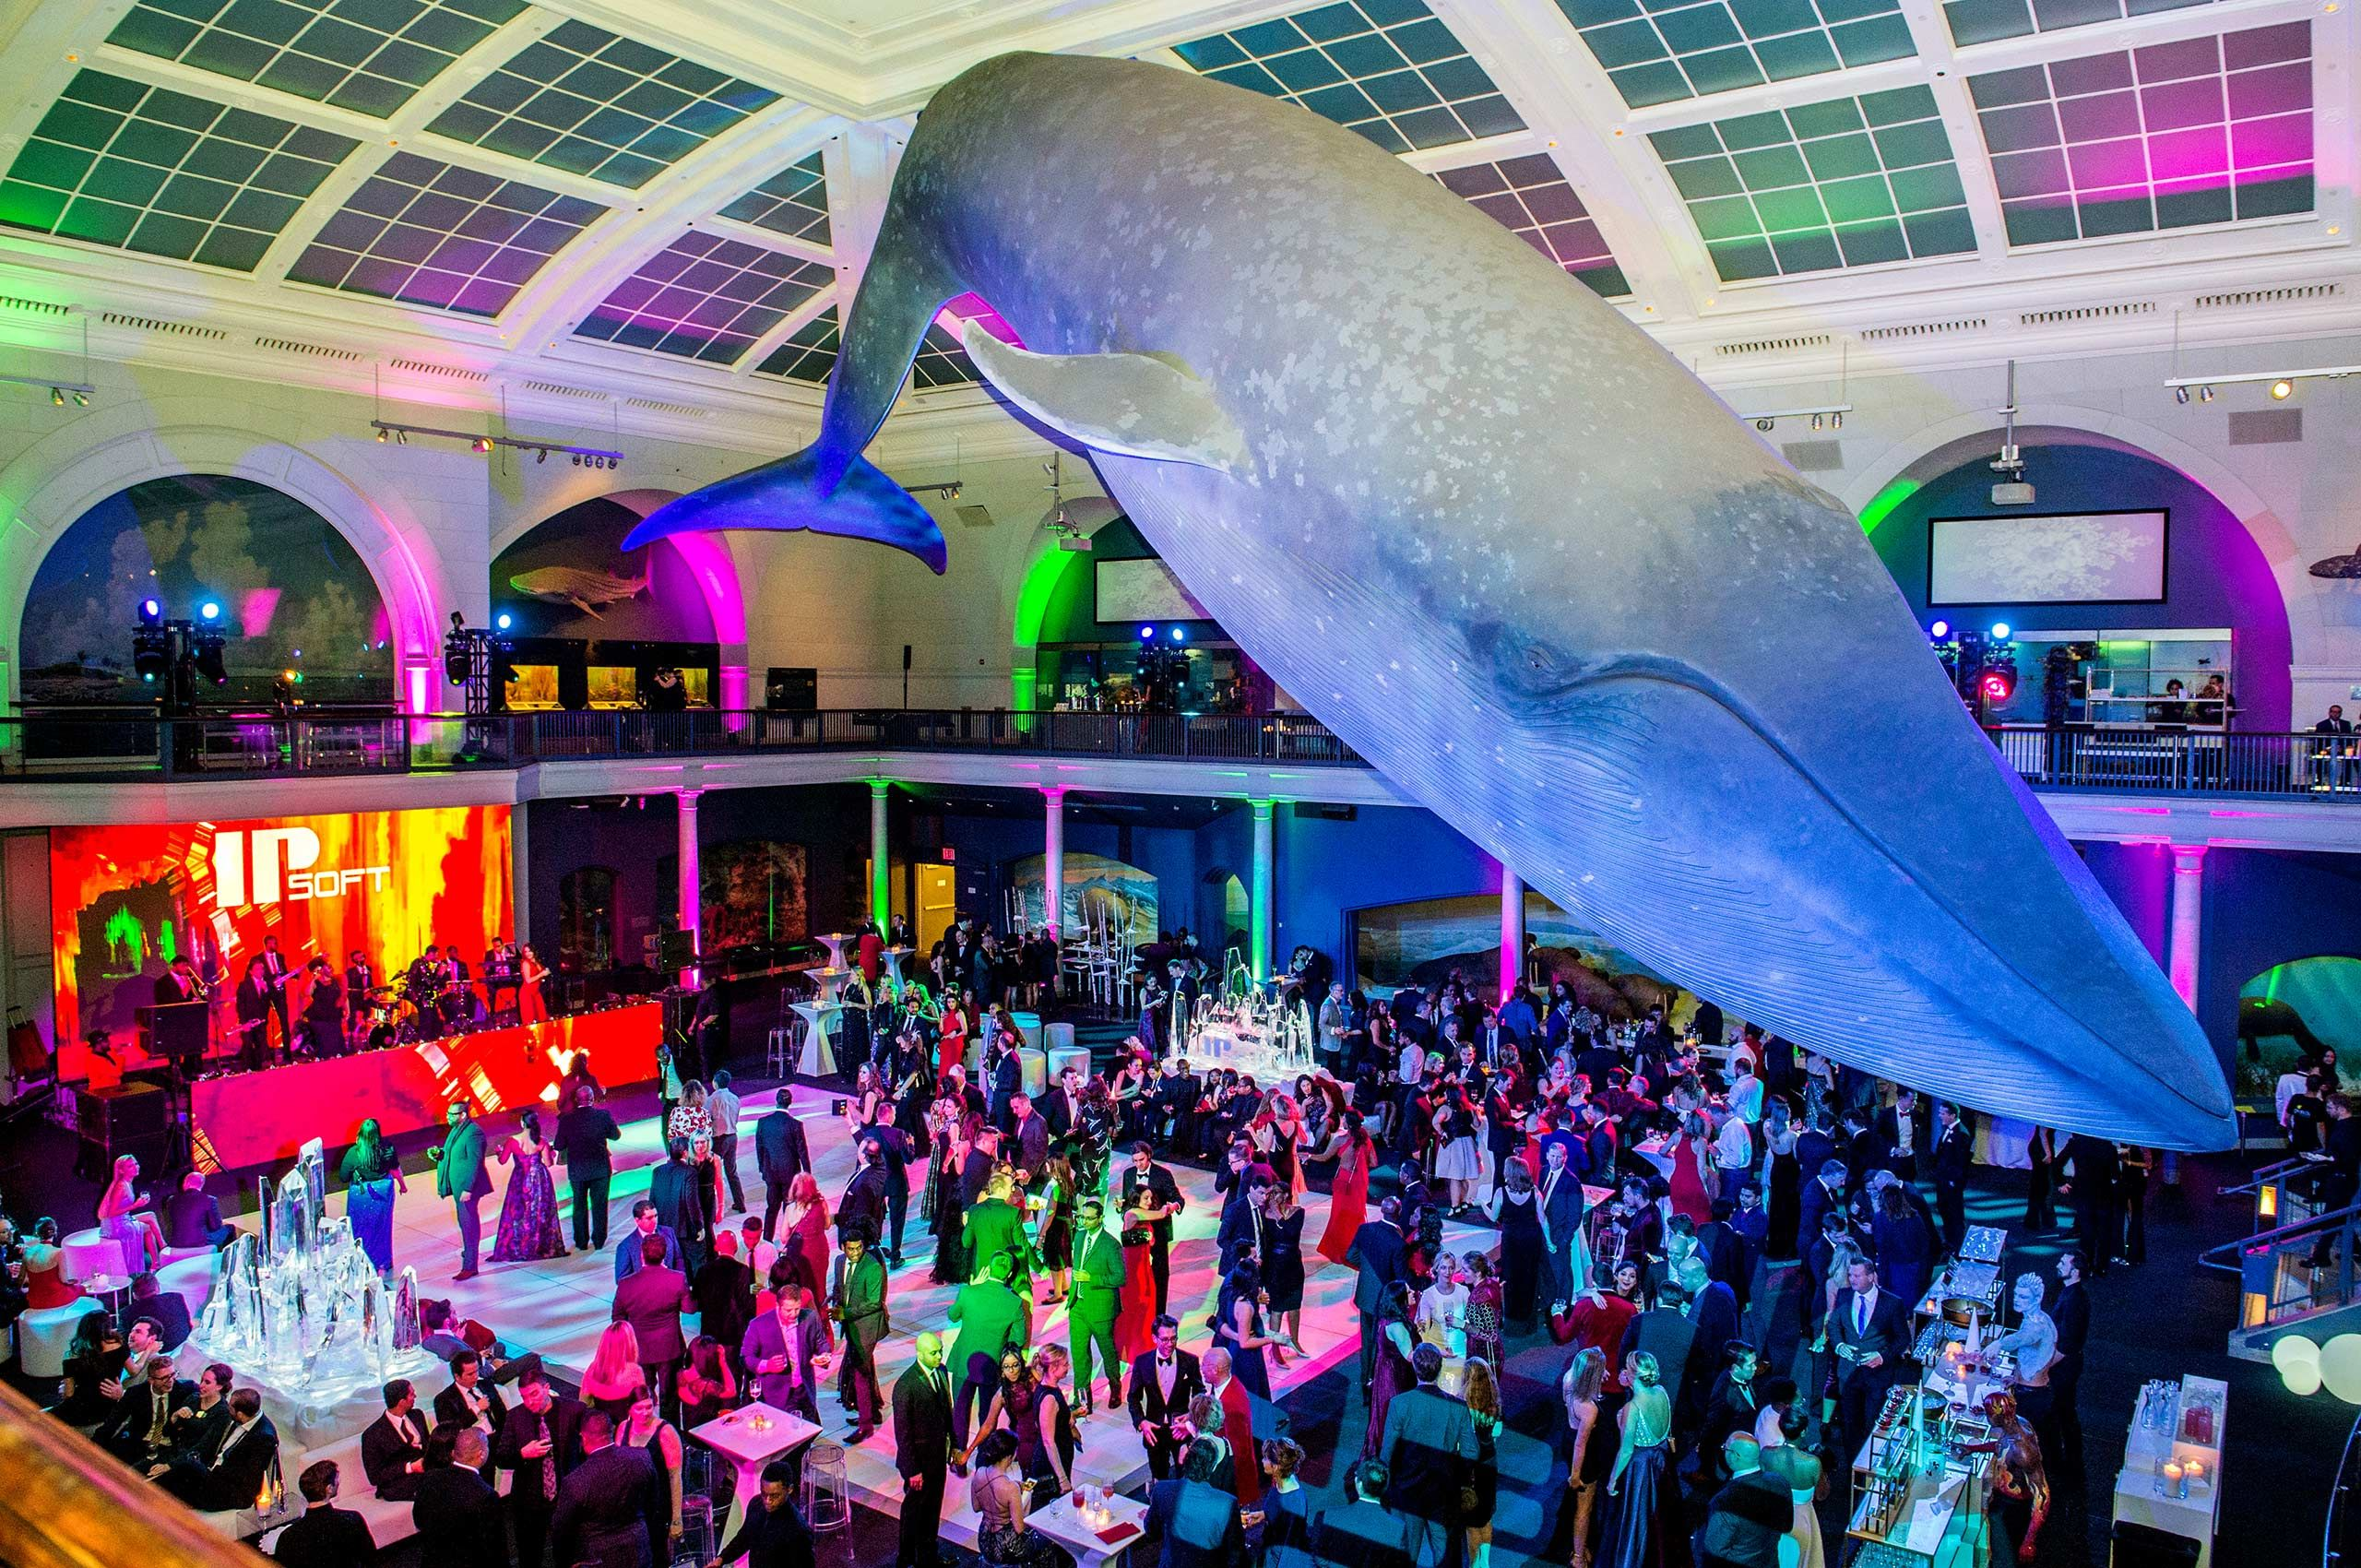 Corporate photography of IPSoft's annual holiday party at the Musuem of Natural History (AMNH)